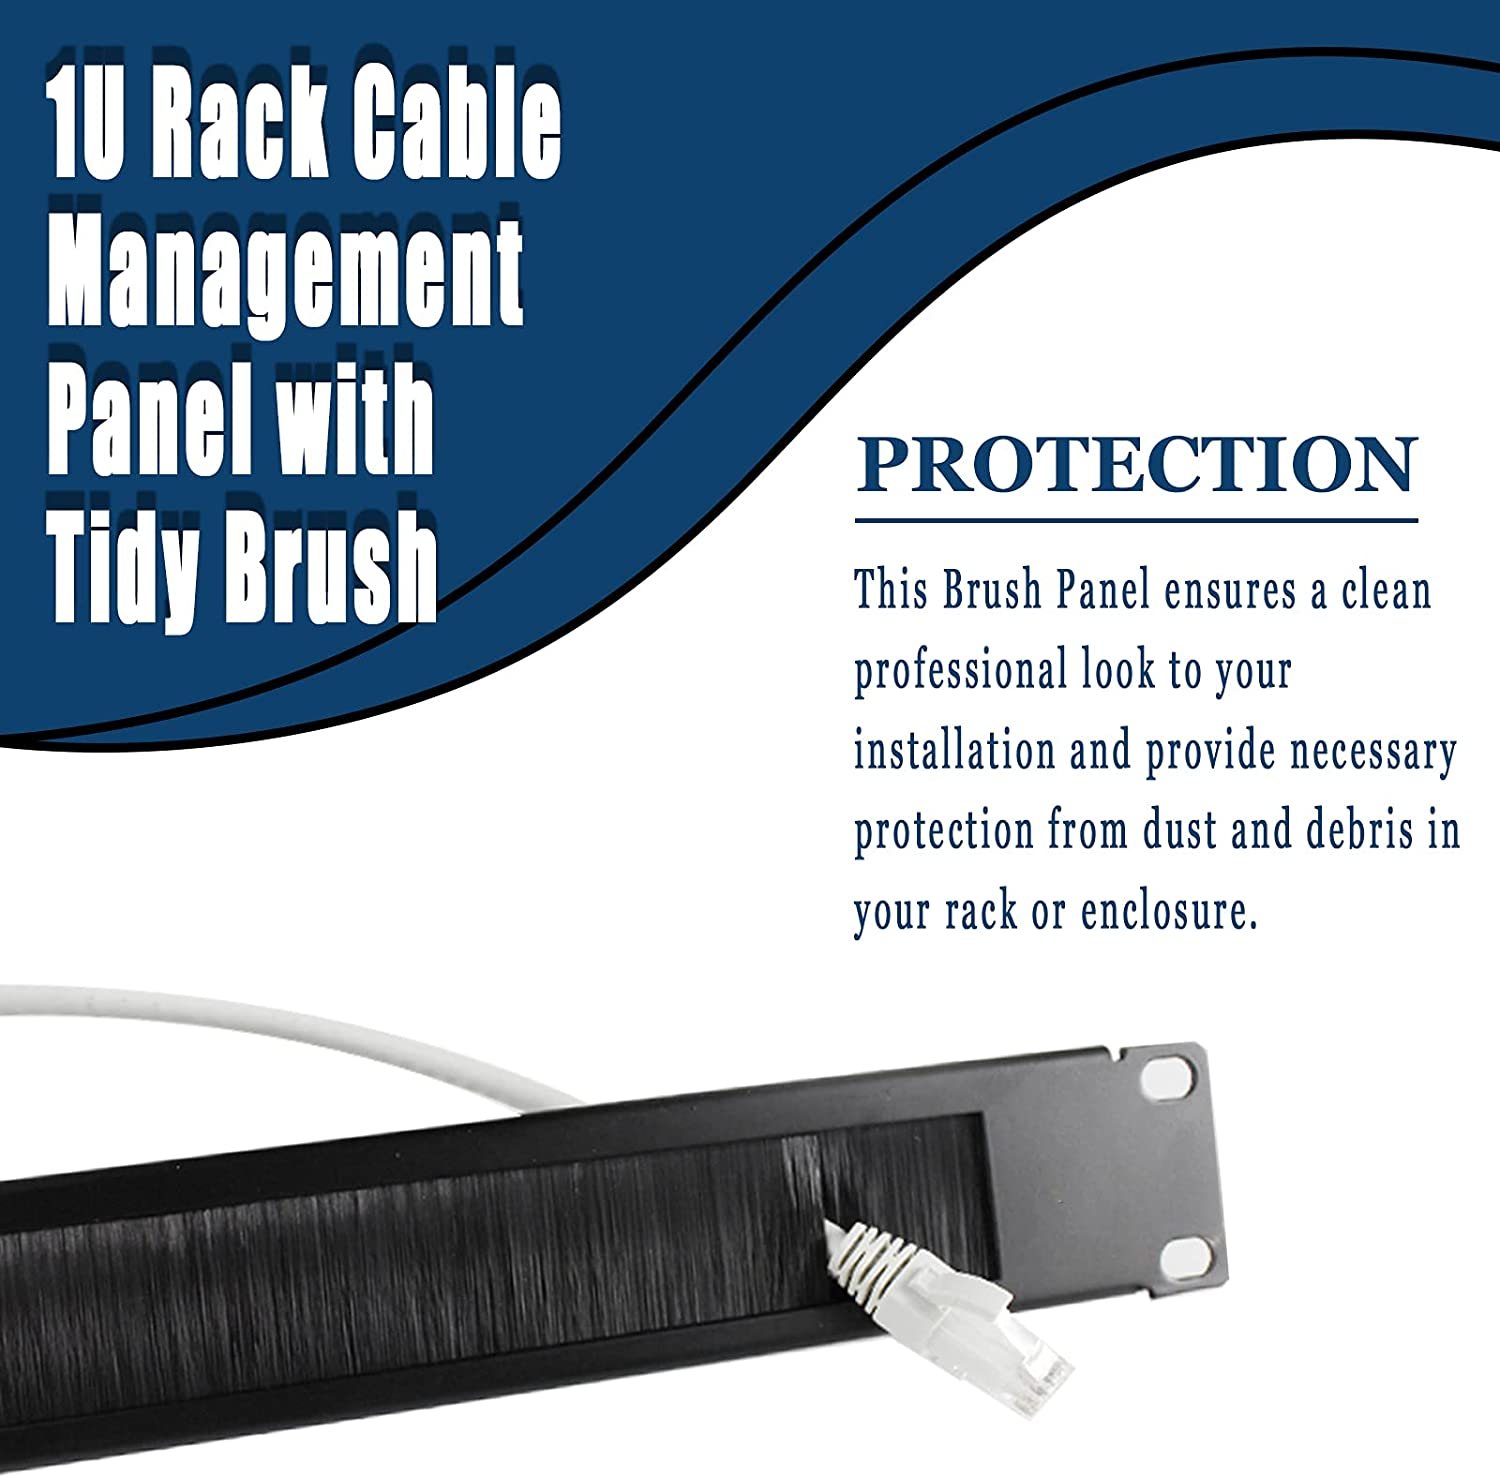 1U Rack-Mounted Cable Management Panel with a Neat Brush Slot for Arranging The Black Cable Entry of a 19-inch Rack or Cabinet, with Necessary mounting Hardware